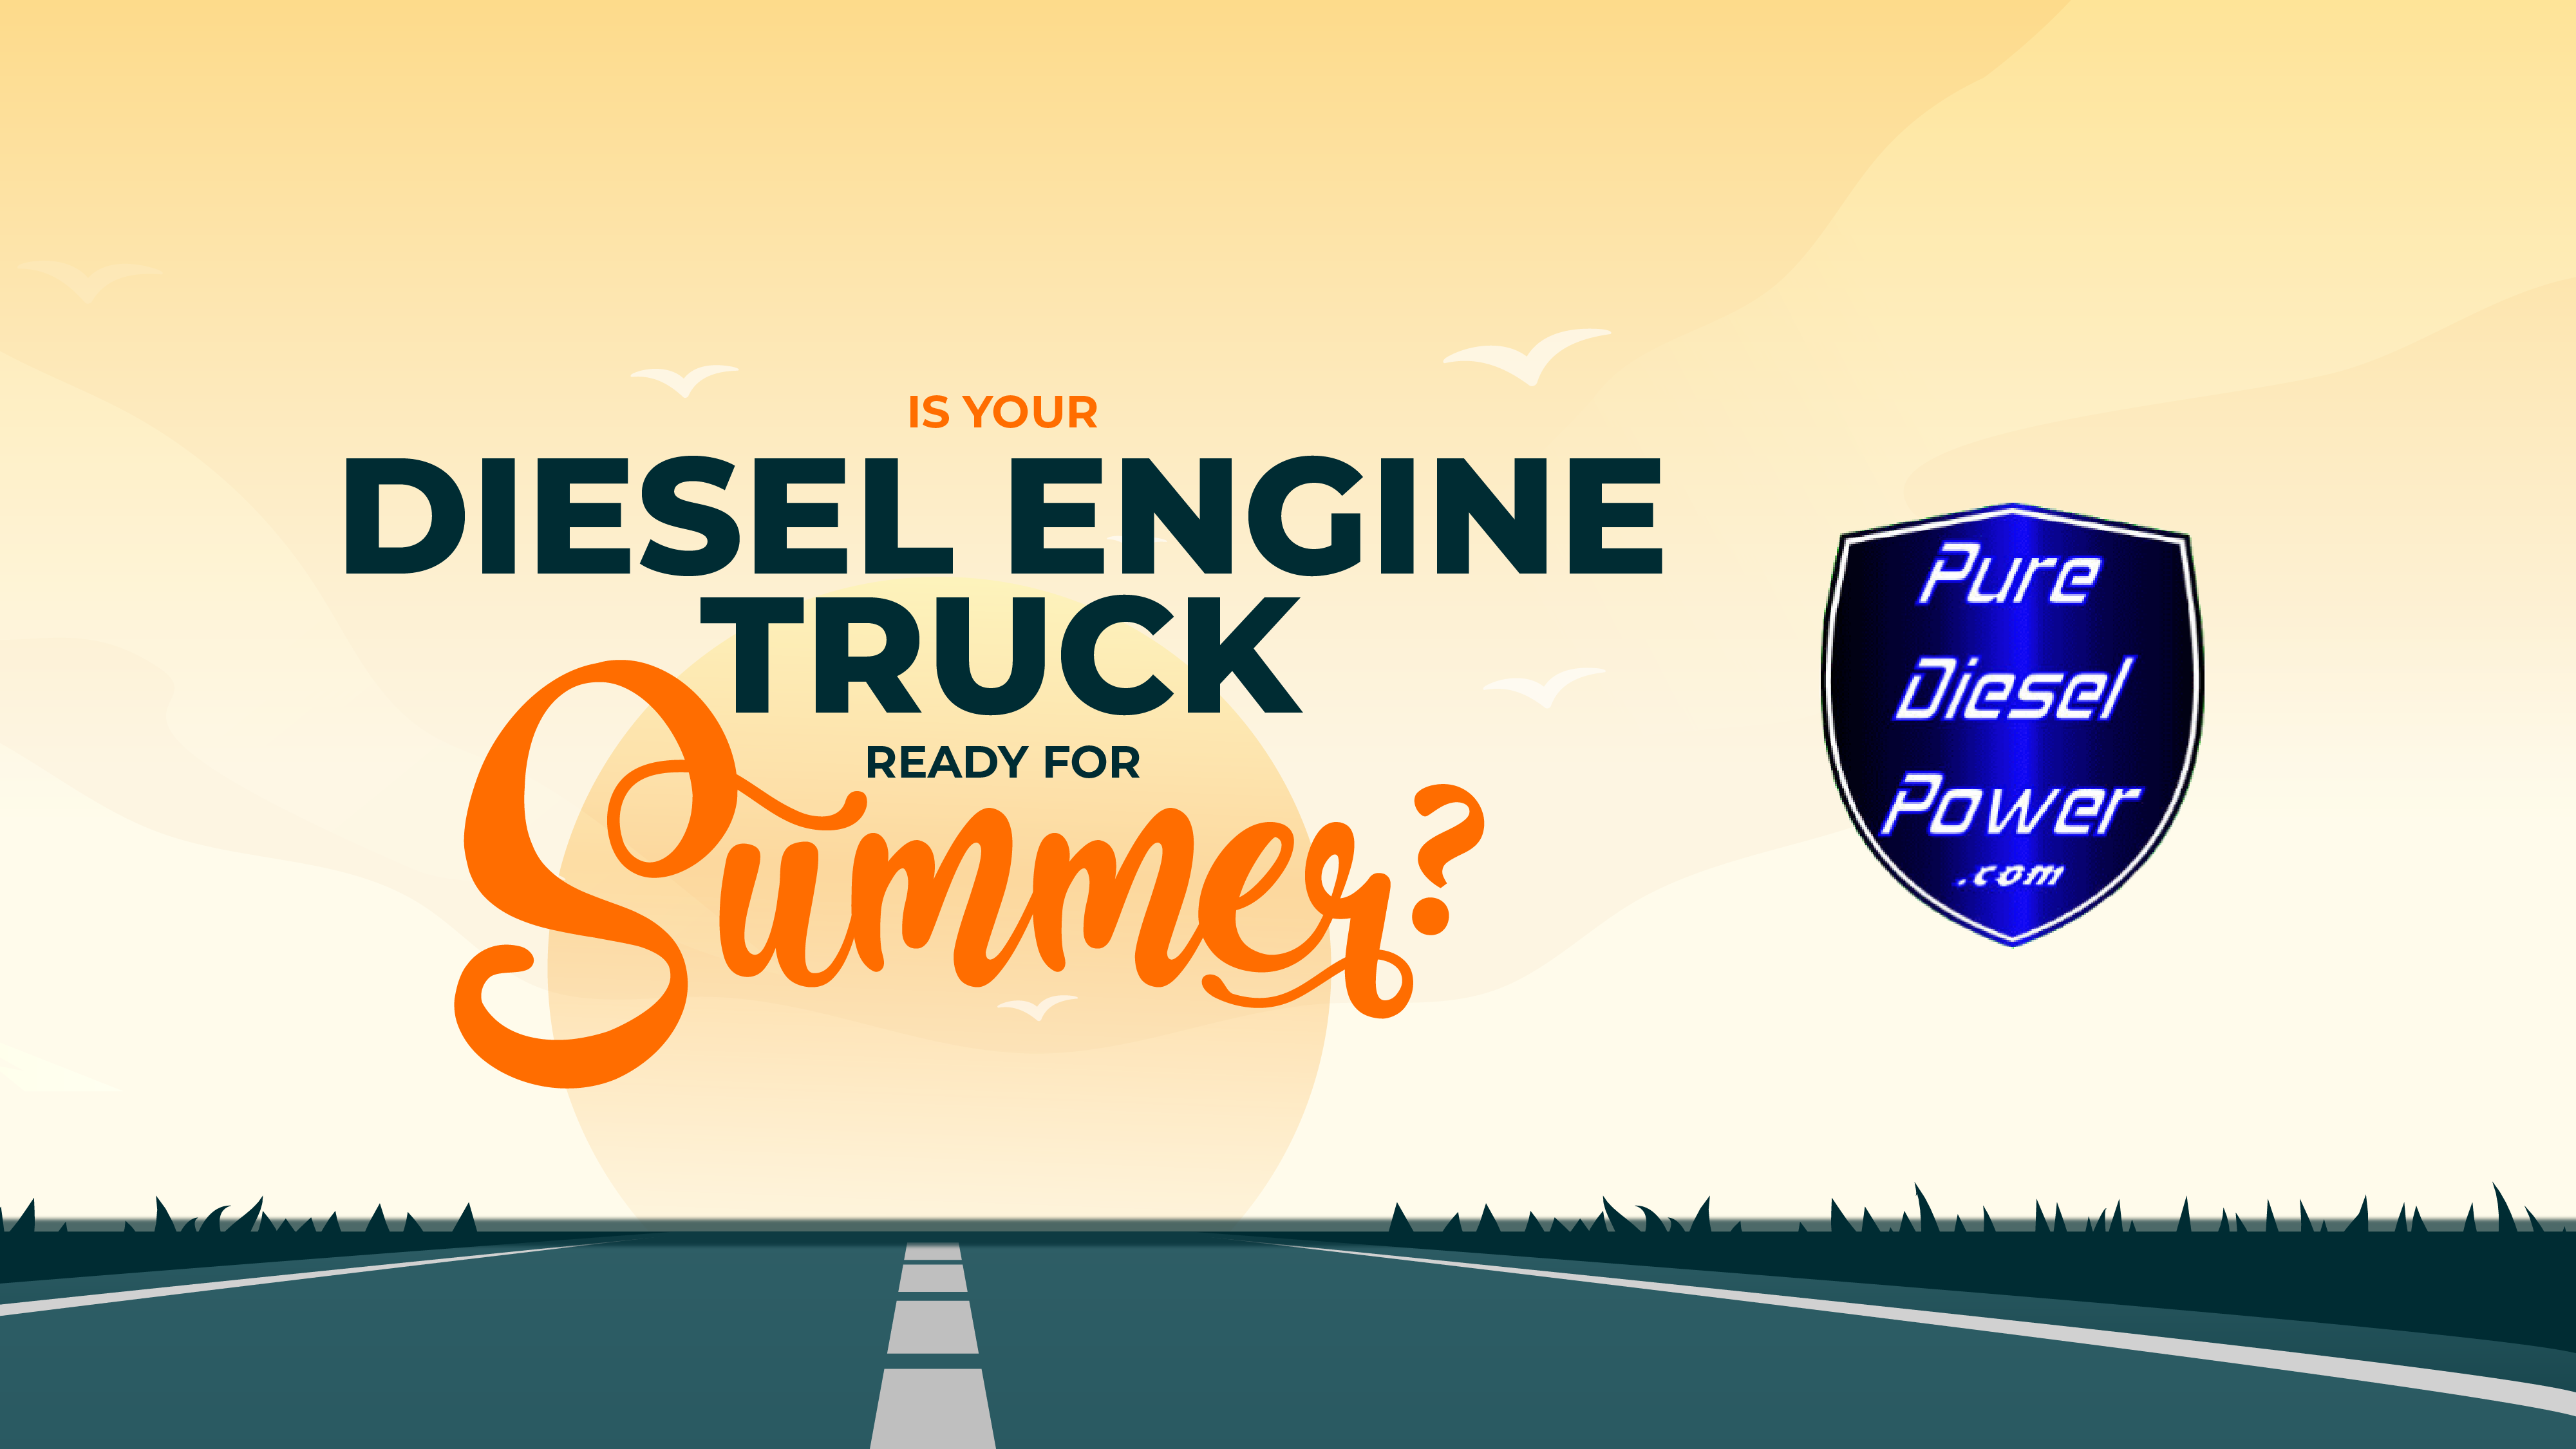 Is Your Diesel Engine Ready for Summer?